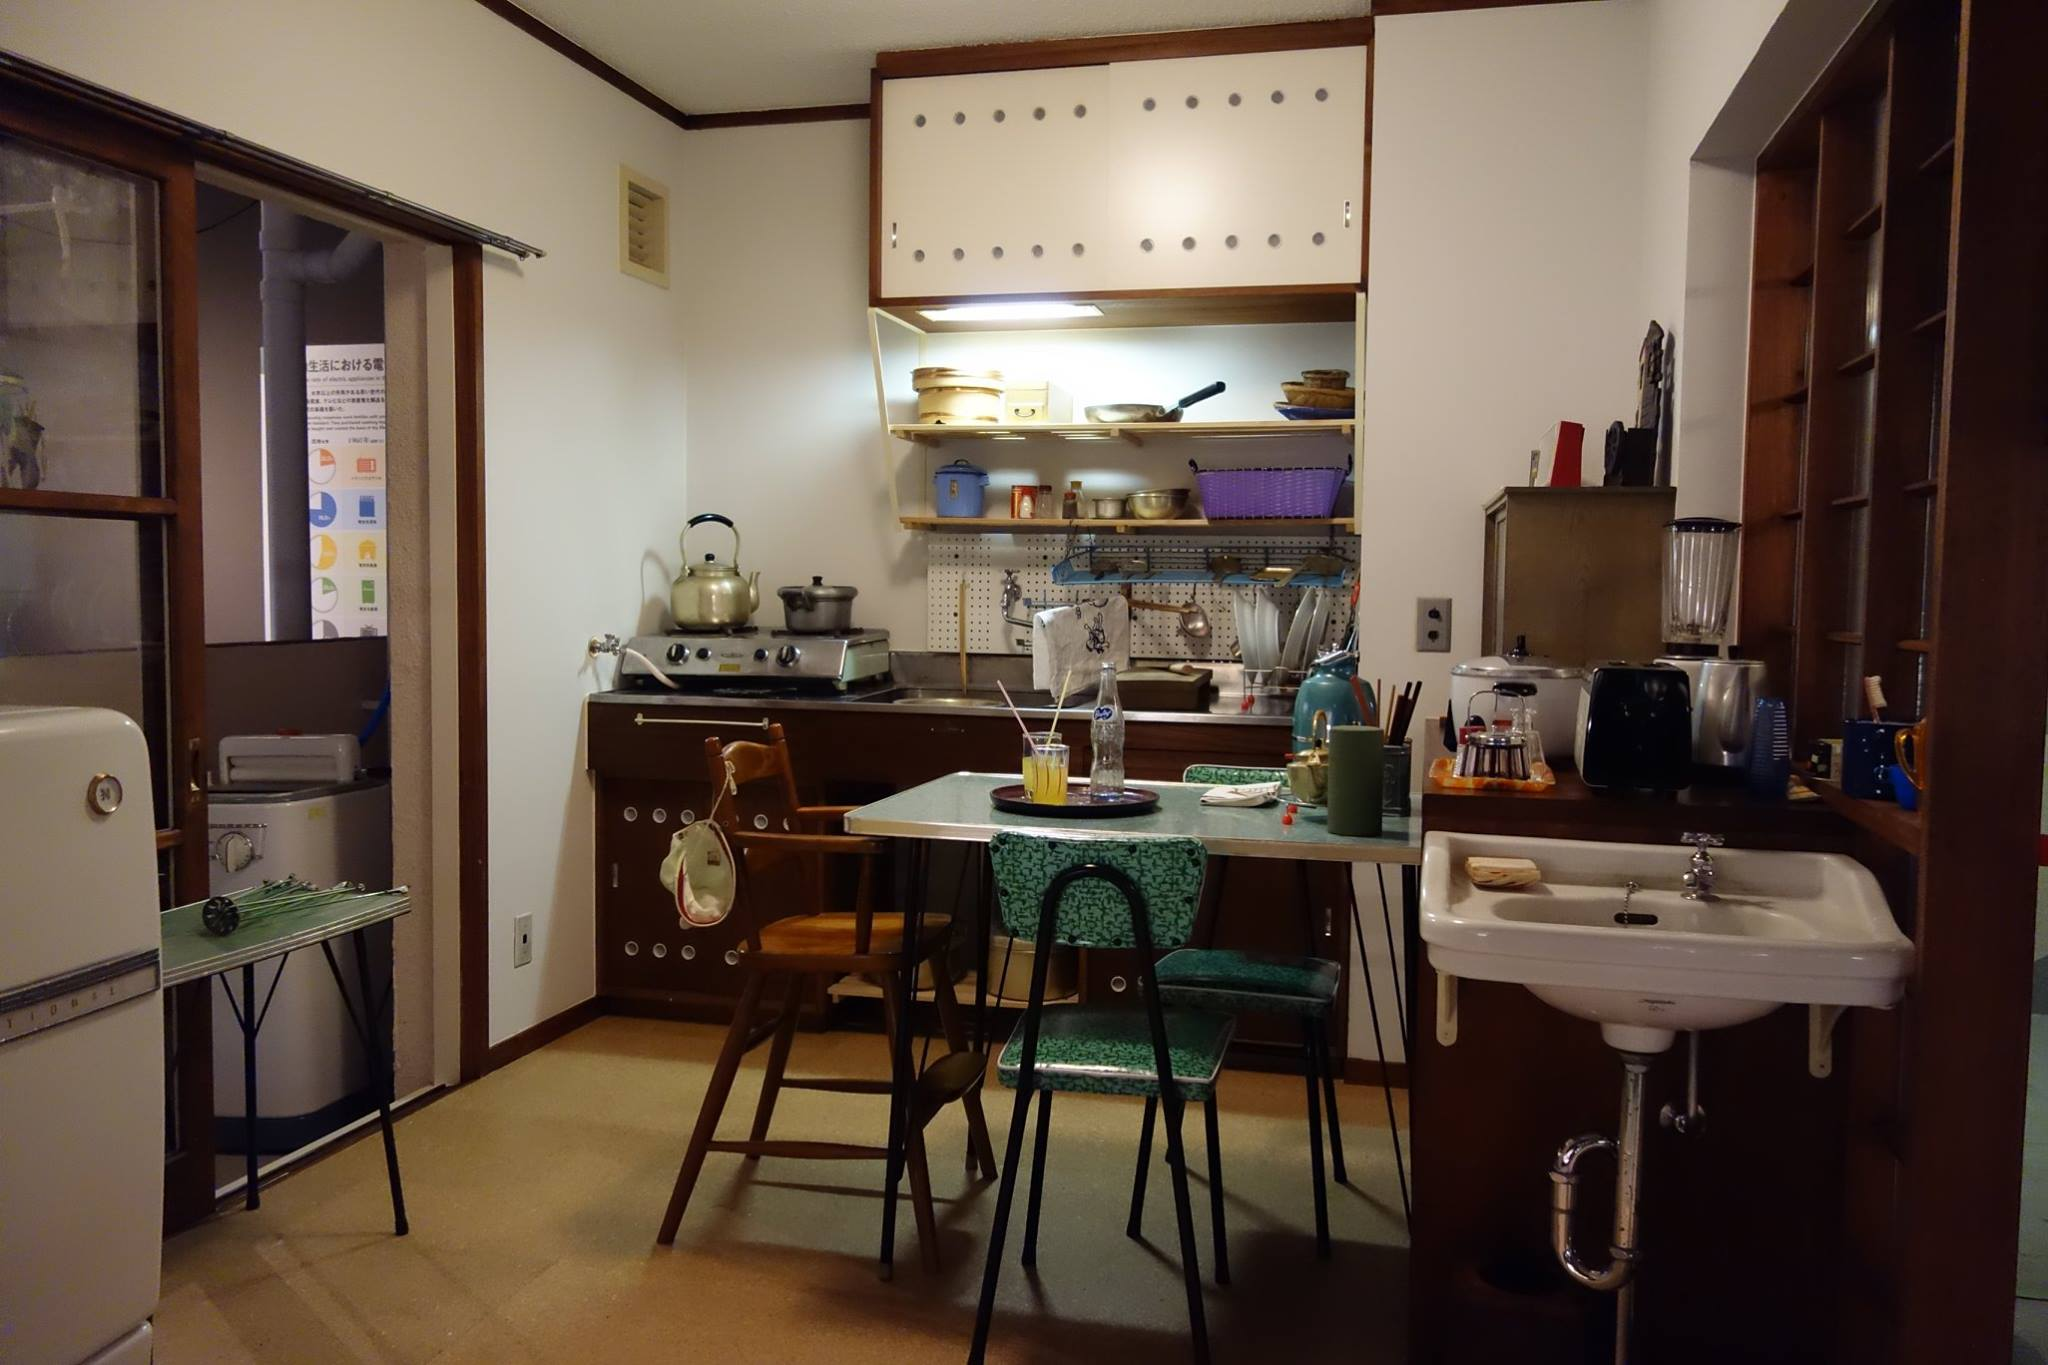 Rebuilt Room (of typical apartment room in the Showa era)